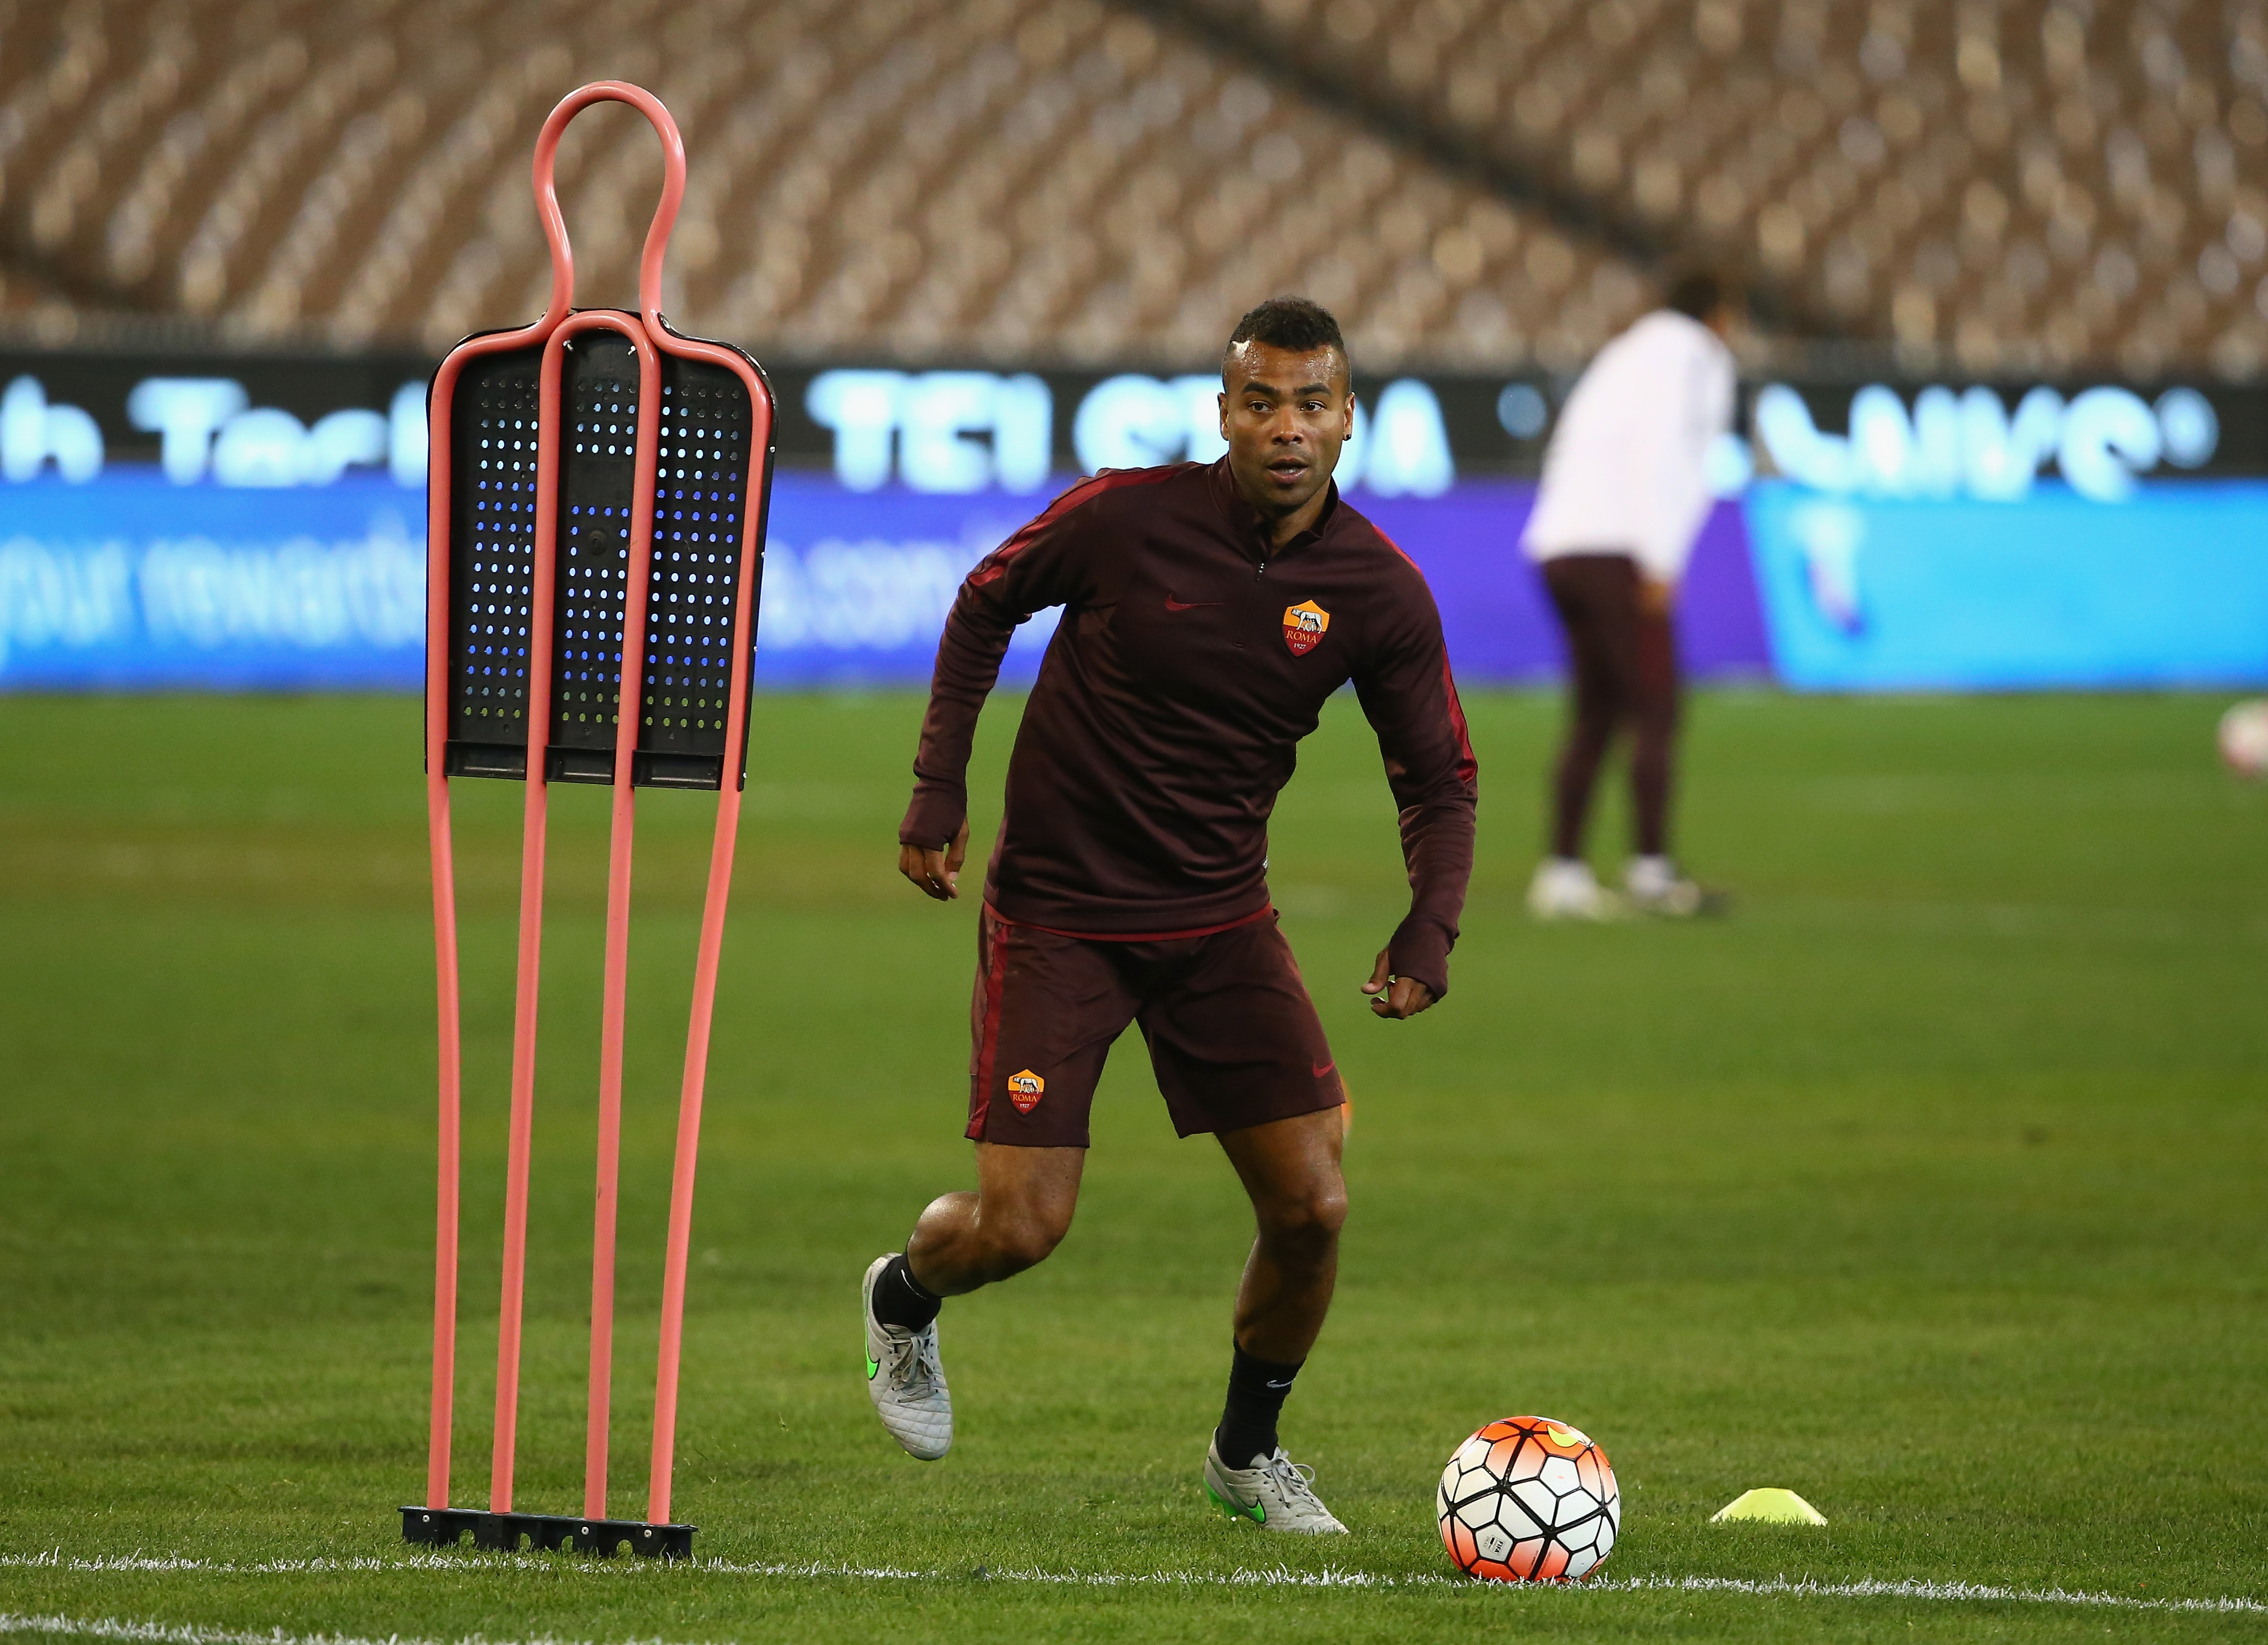 Ashley Cole on the training ground, where he will remain until a suitable transfer offer surfaces